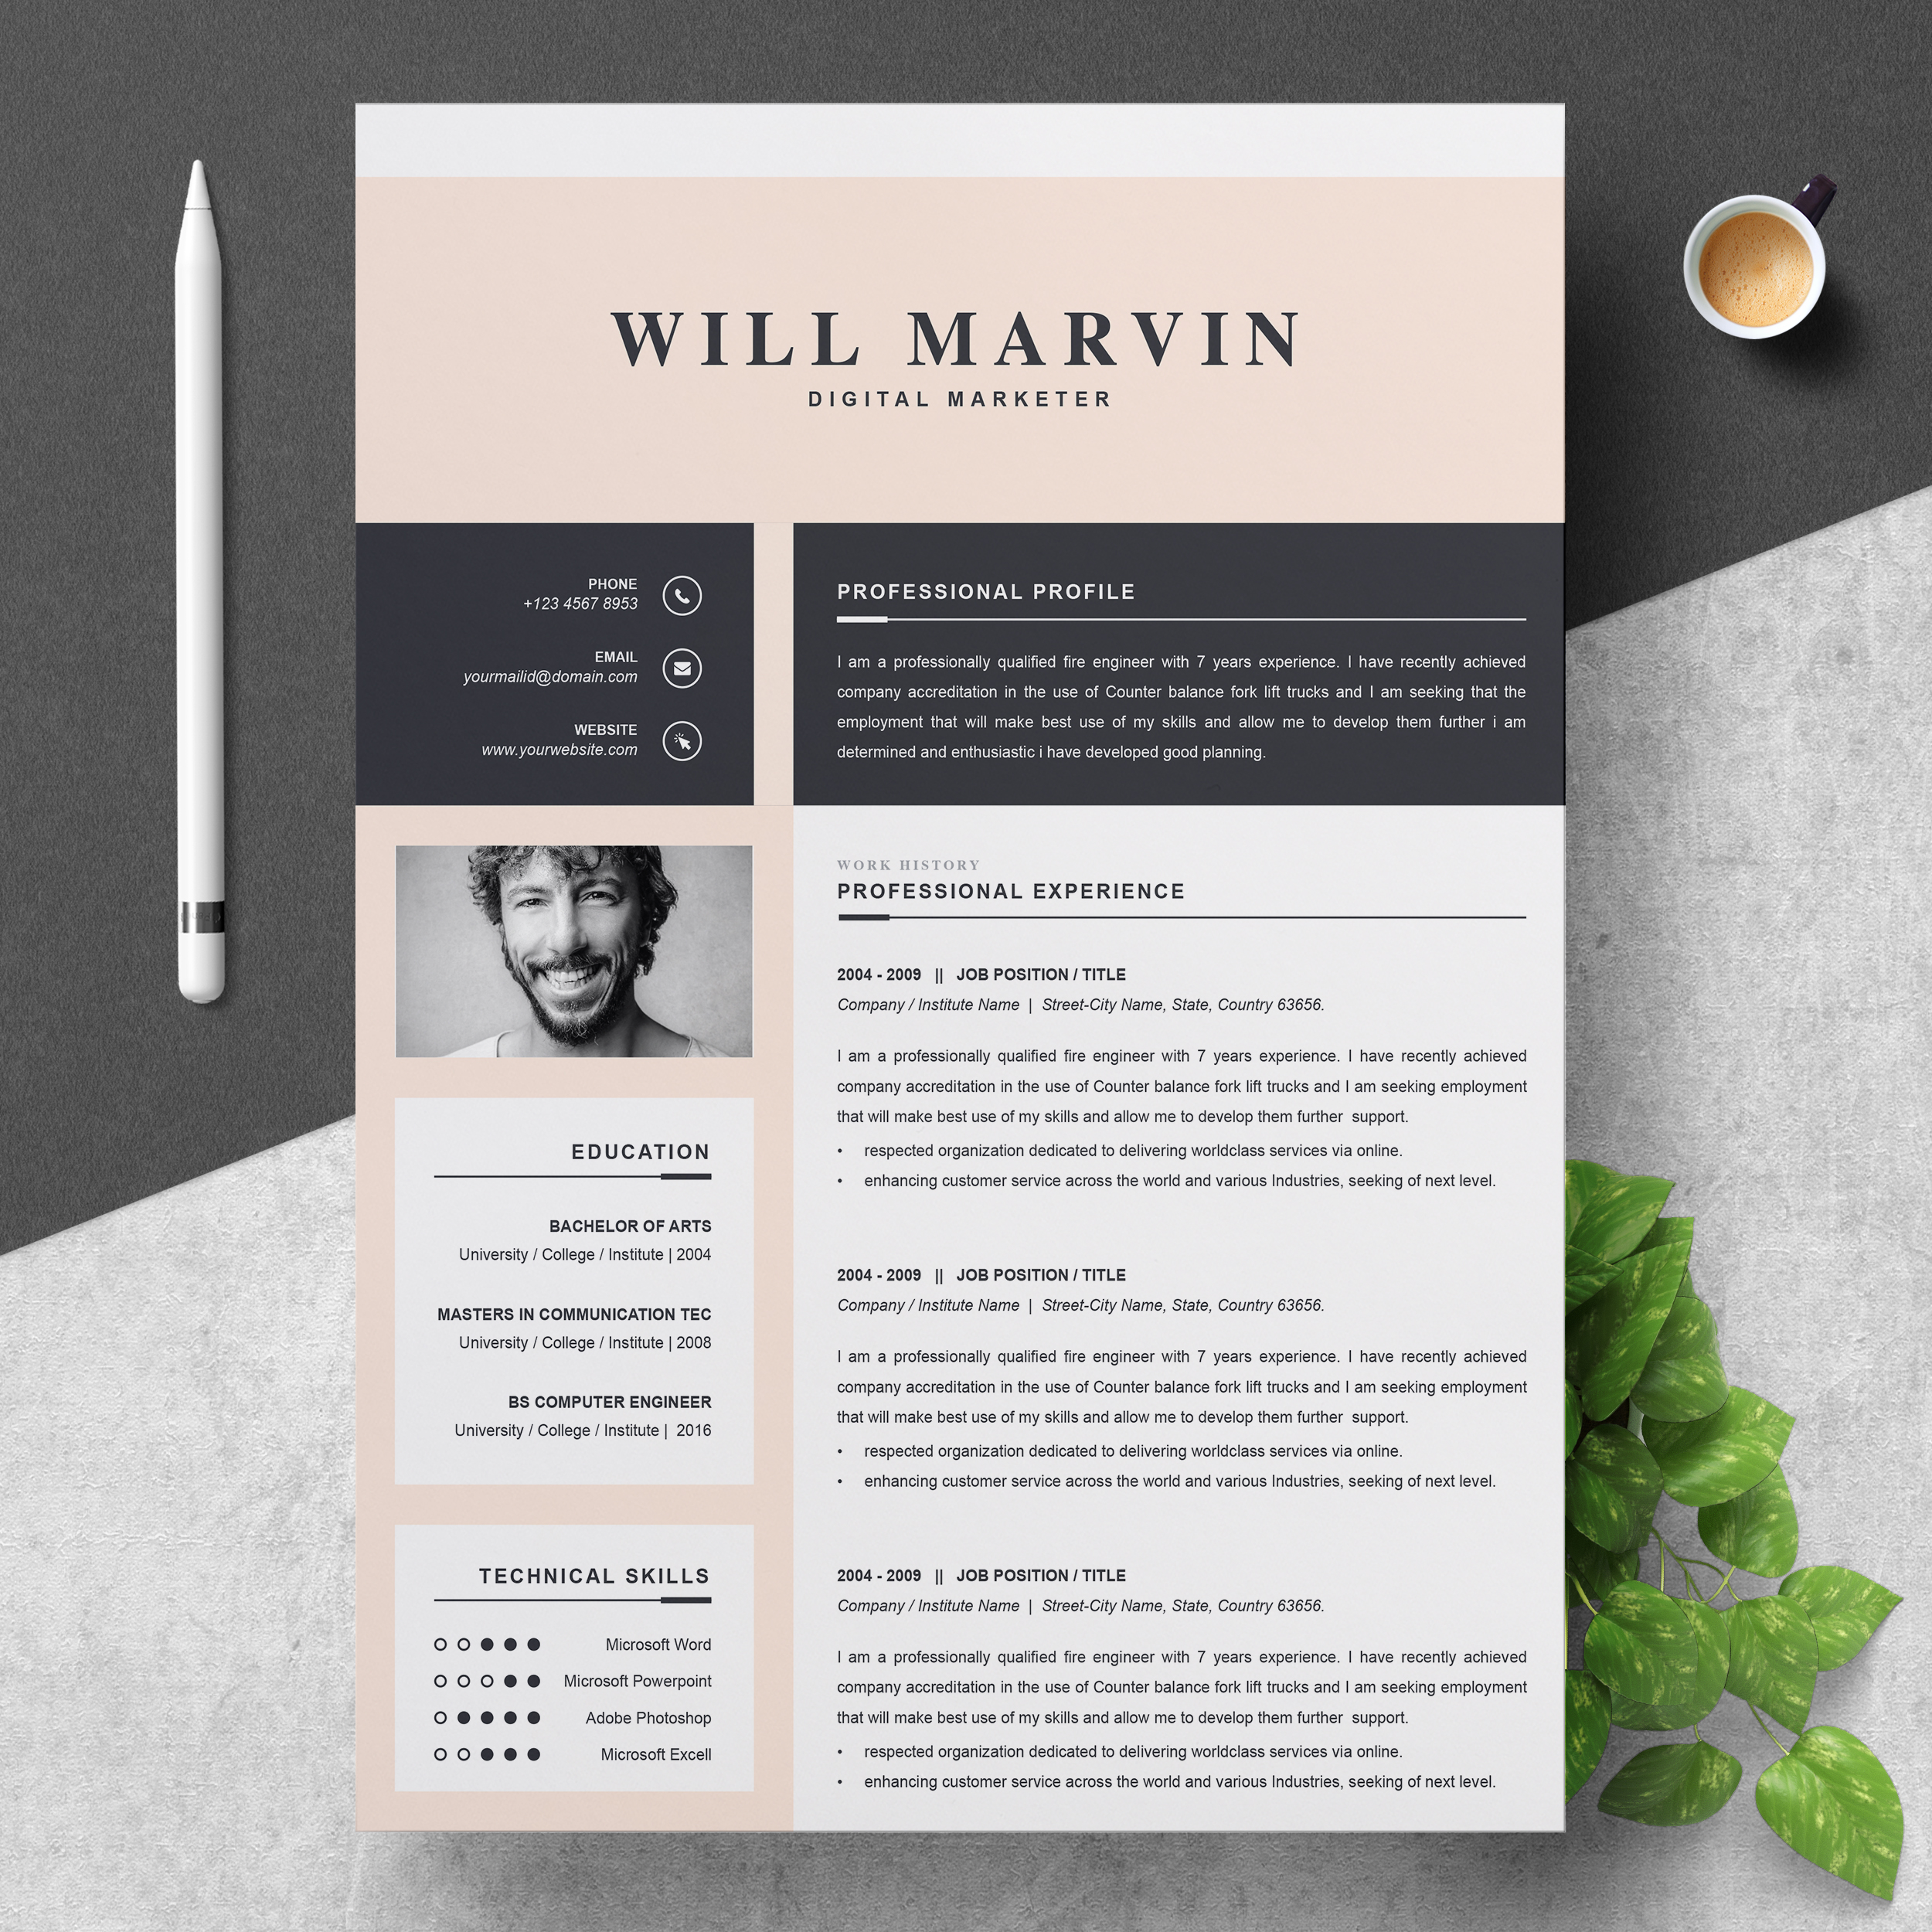 Marketer Resume Template 2021